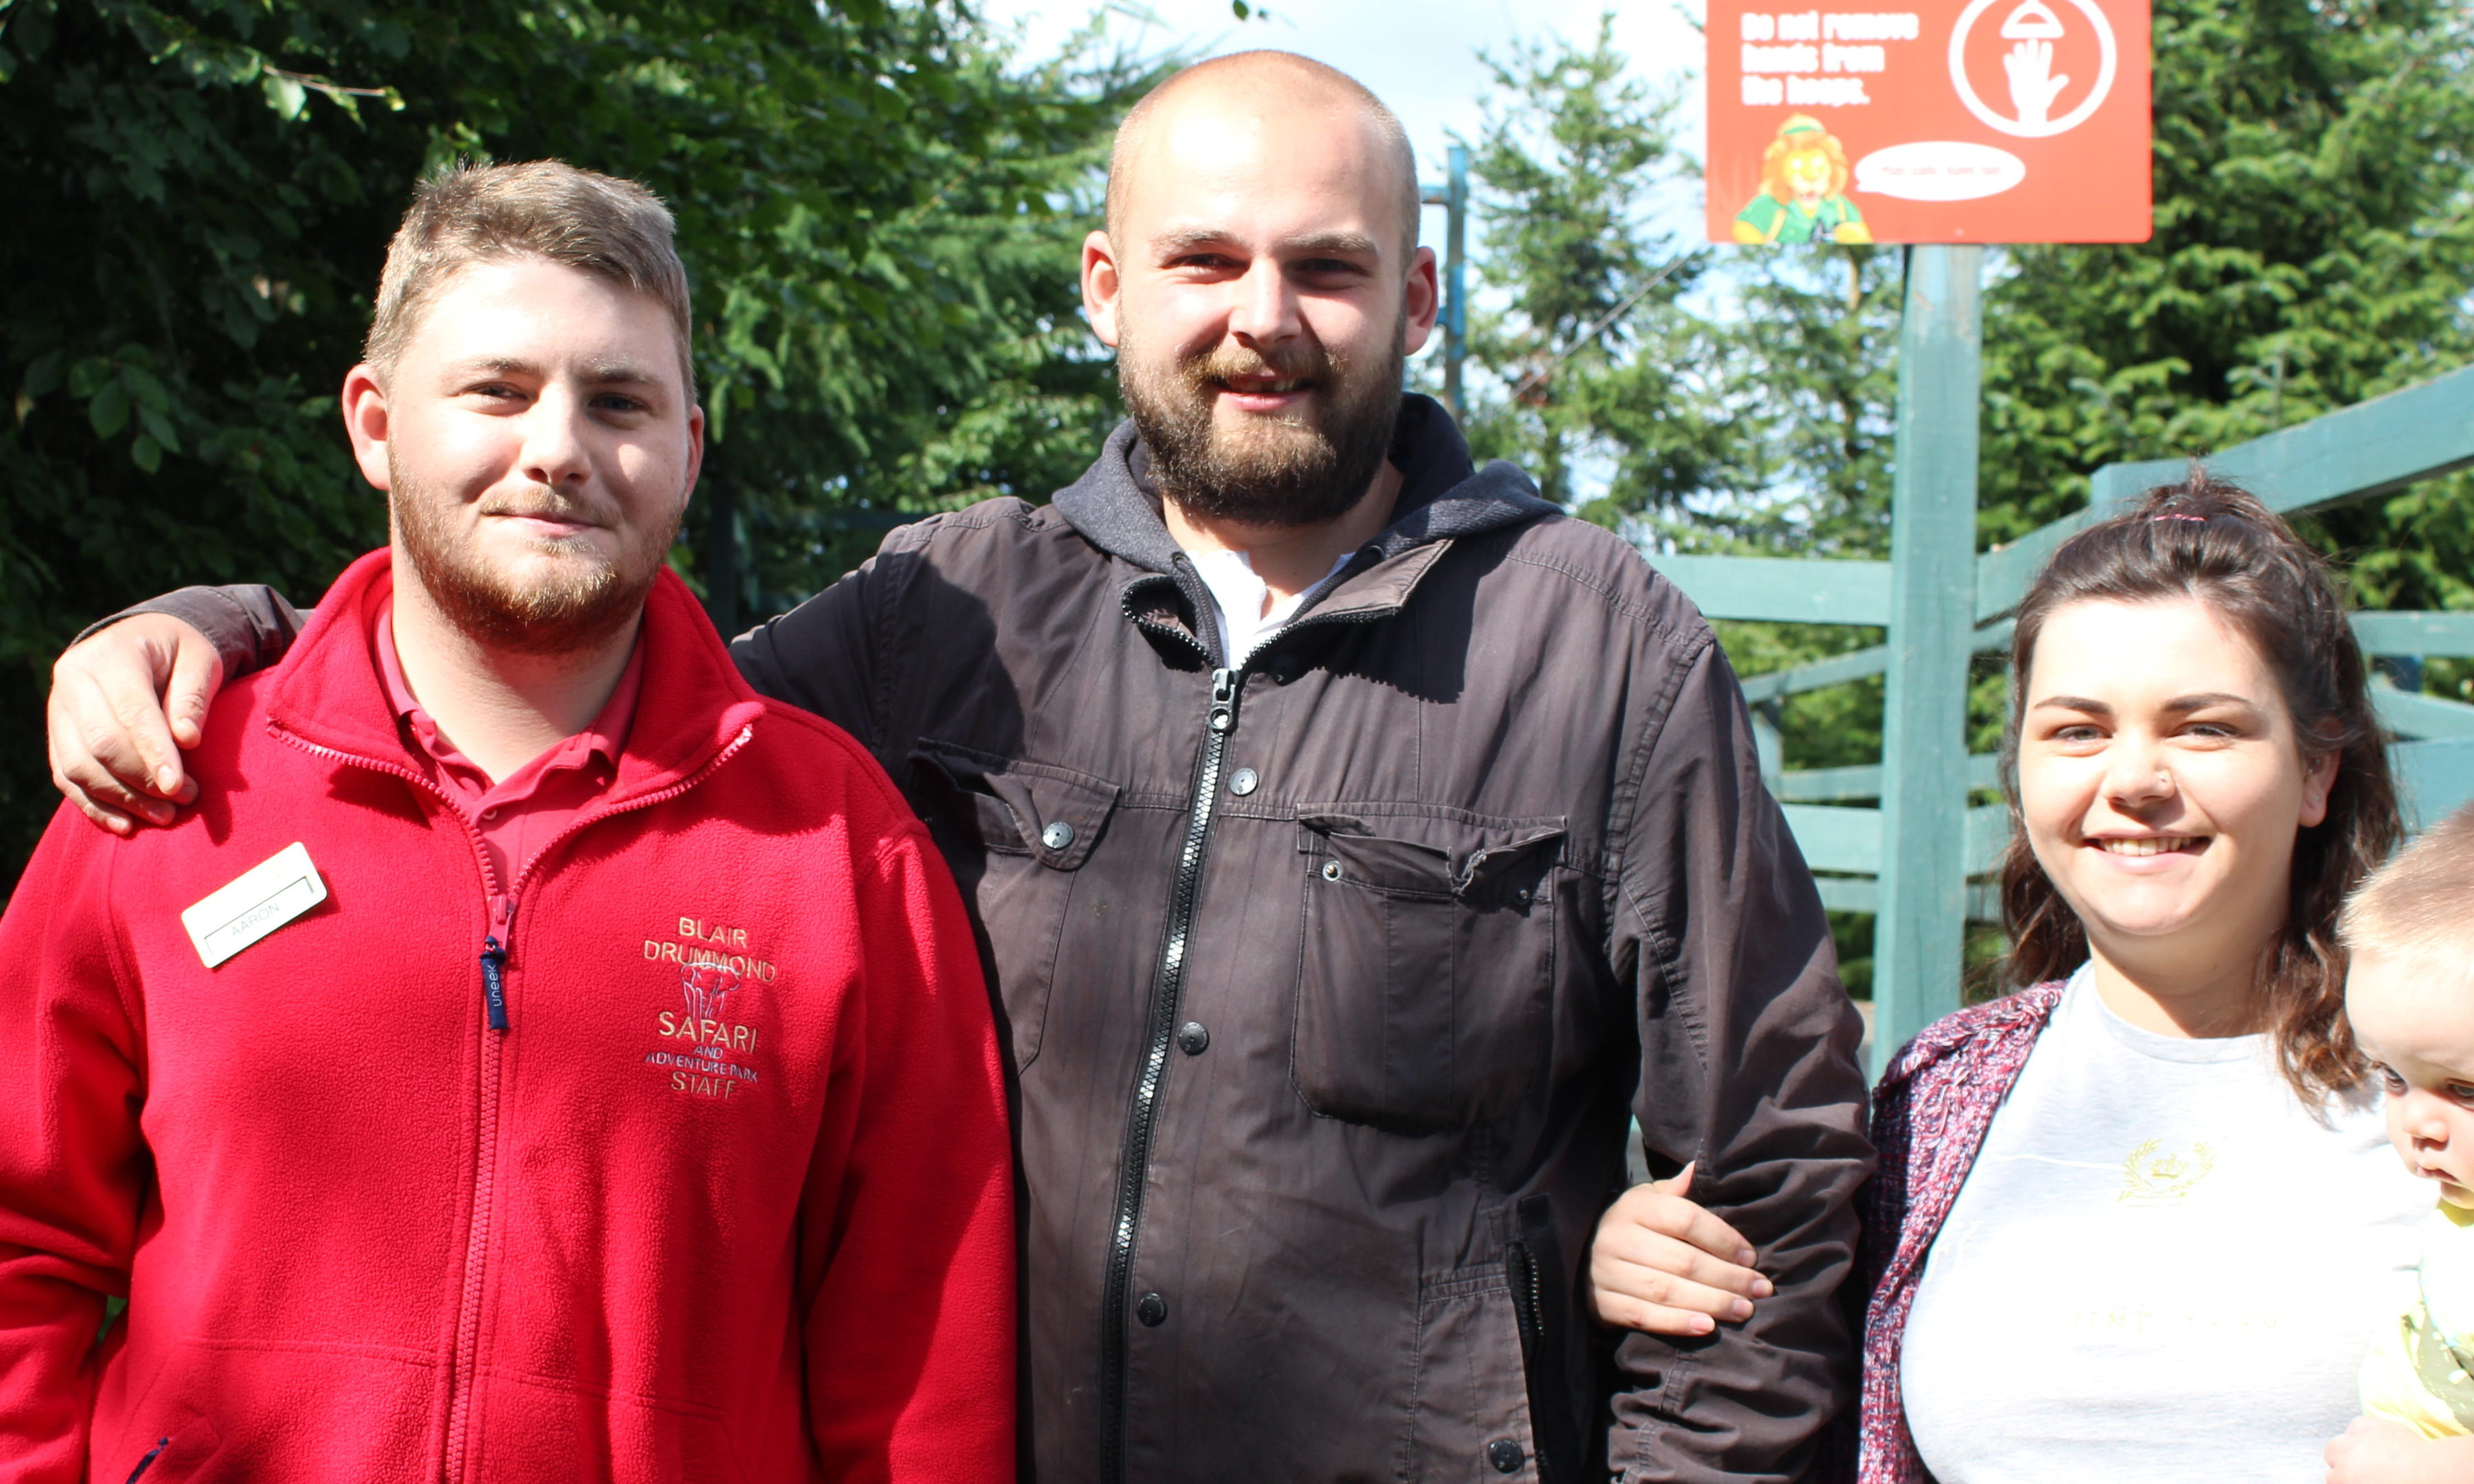 Safari park worker Aaron Jack with father Tom Embleton and his wife Nina Embleton.